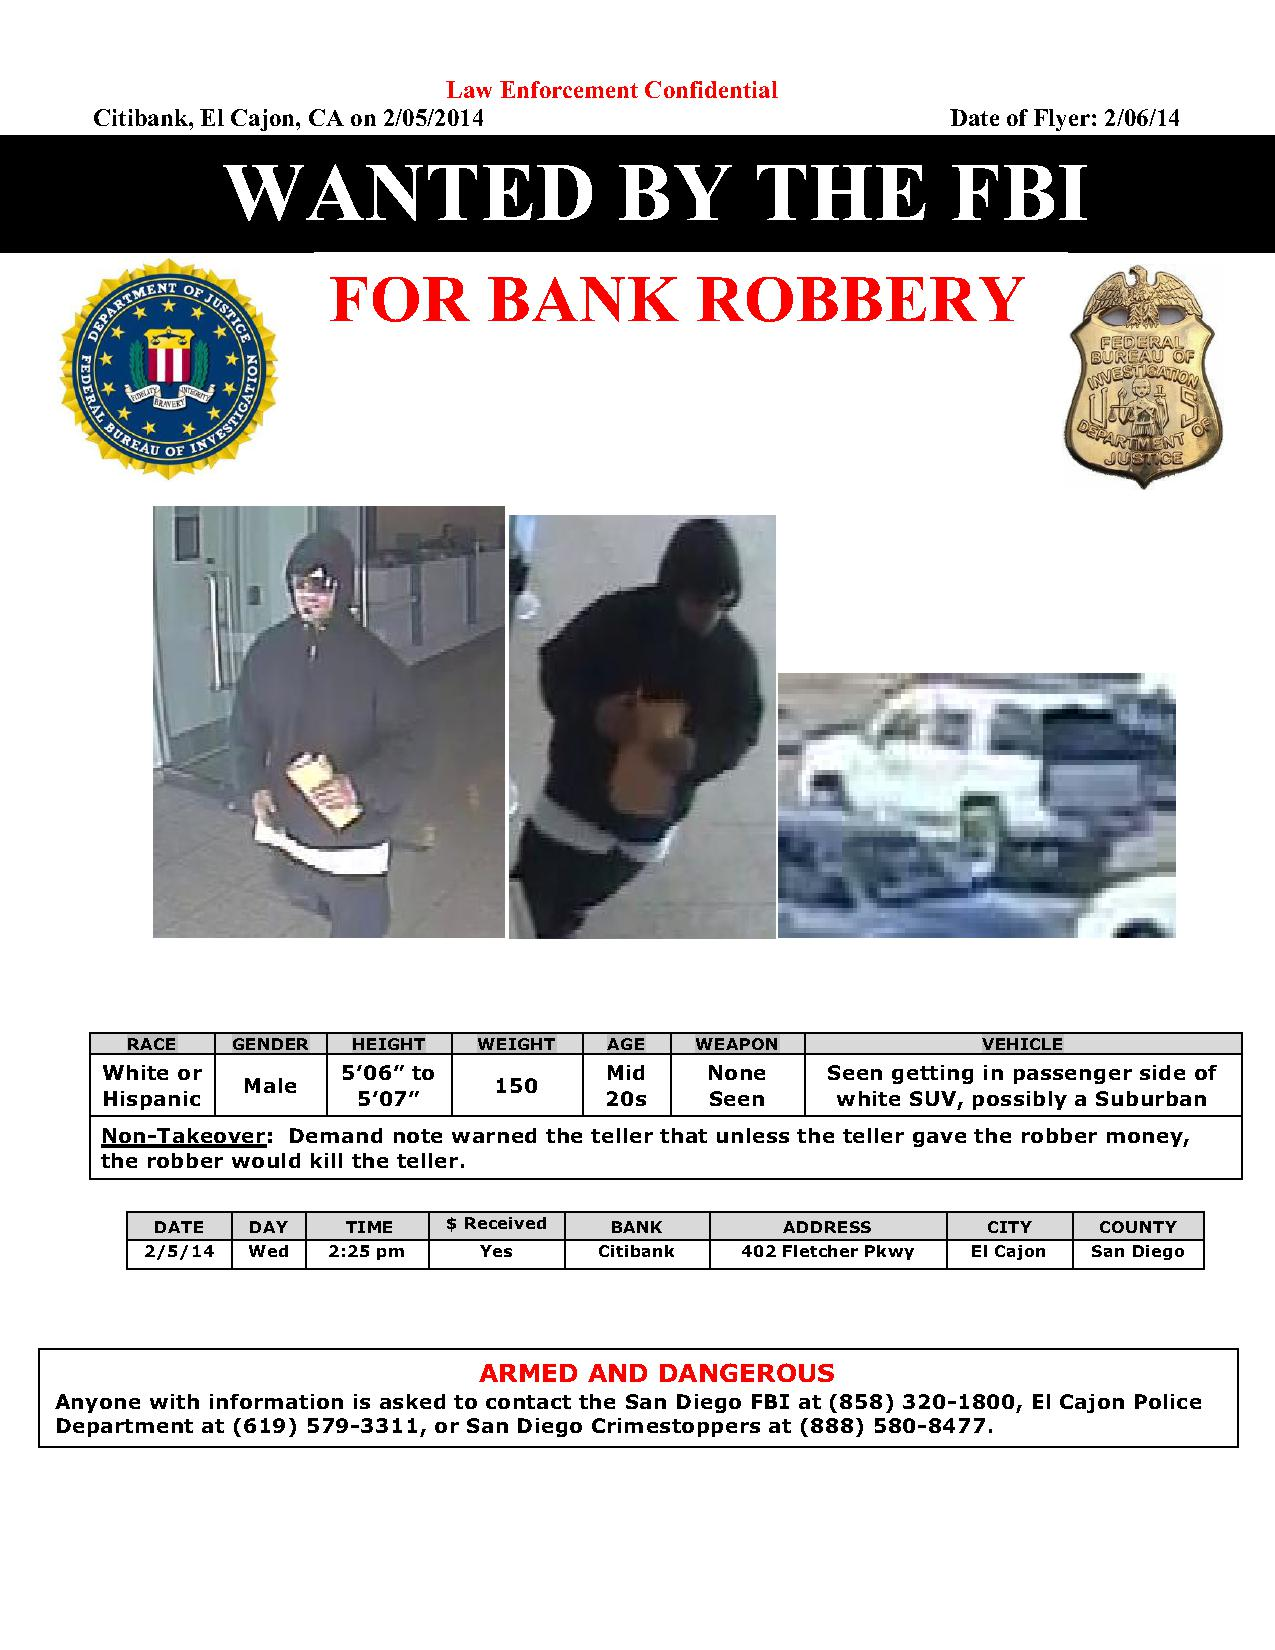 Citibank Fletcher Pkwy - Wanted Flyer for Public (2)_1